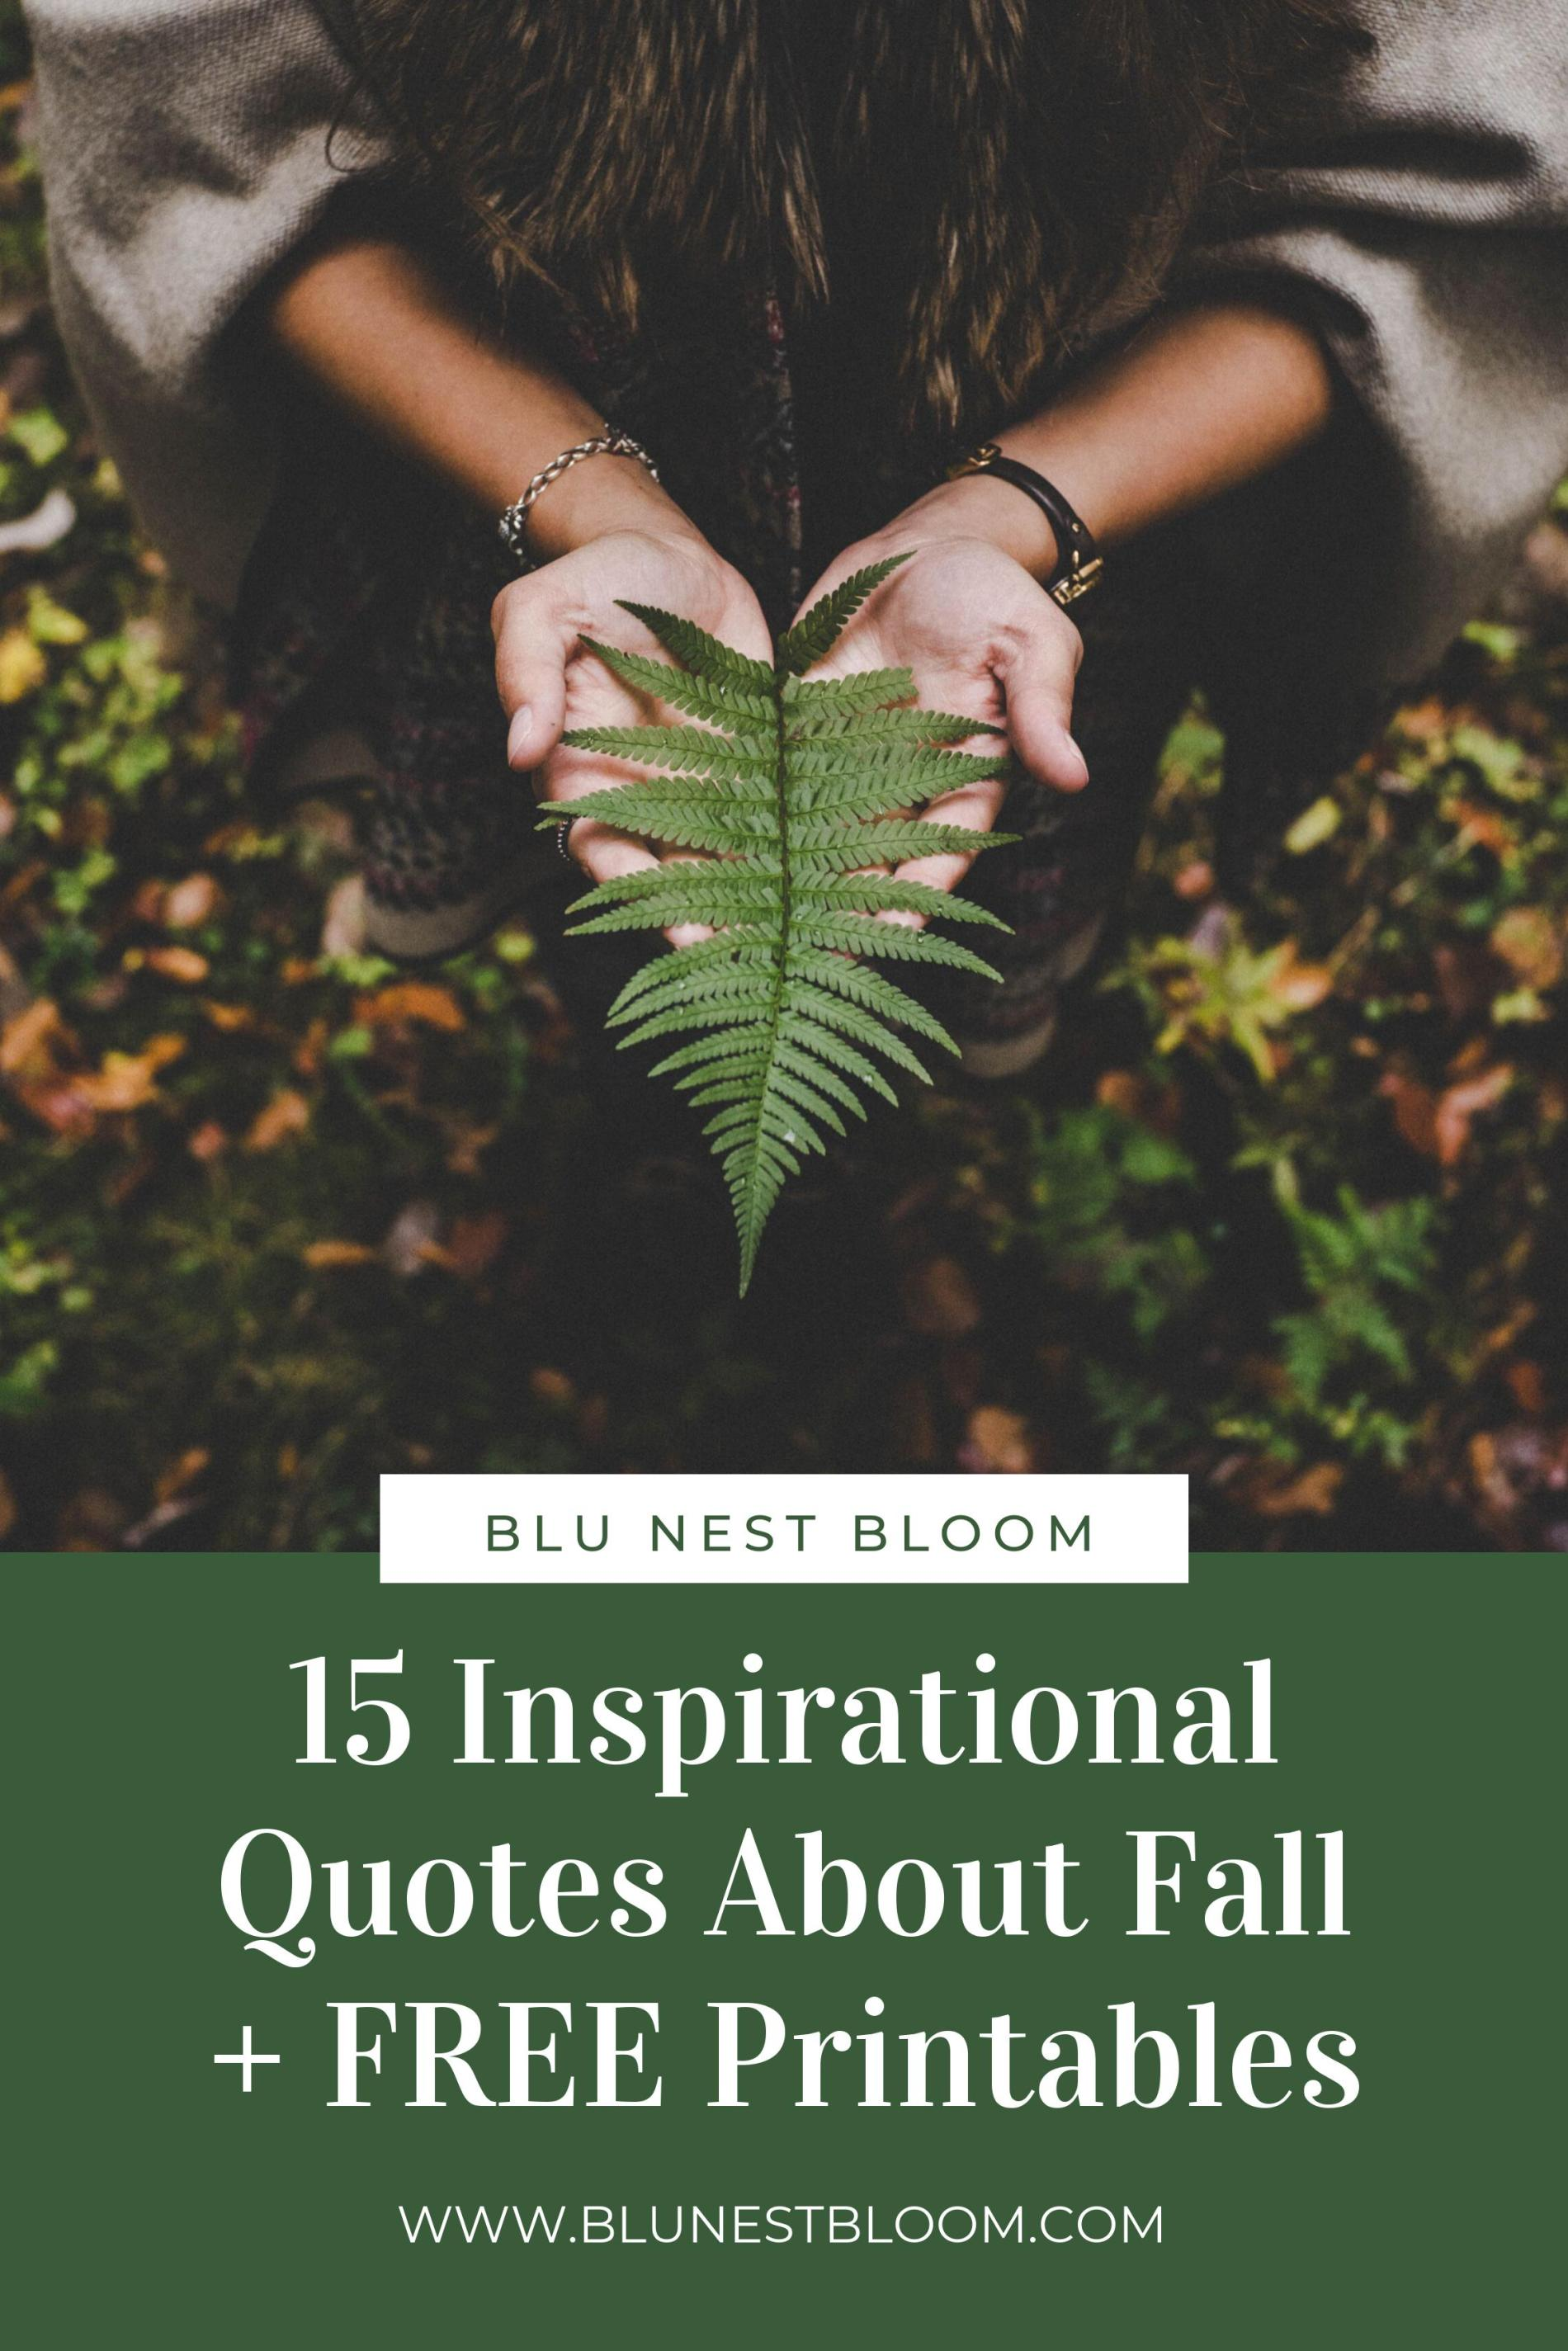 15 Inspirational Quotes About Fall